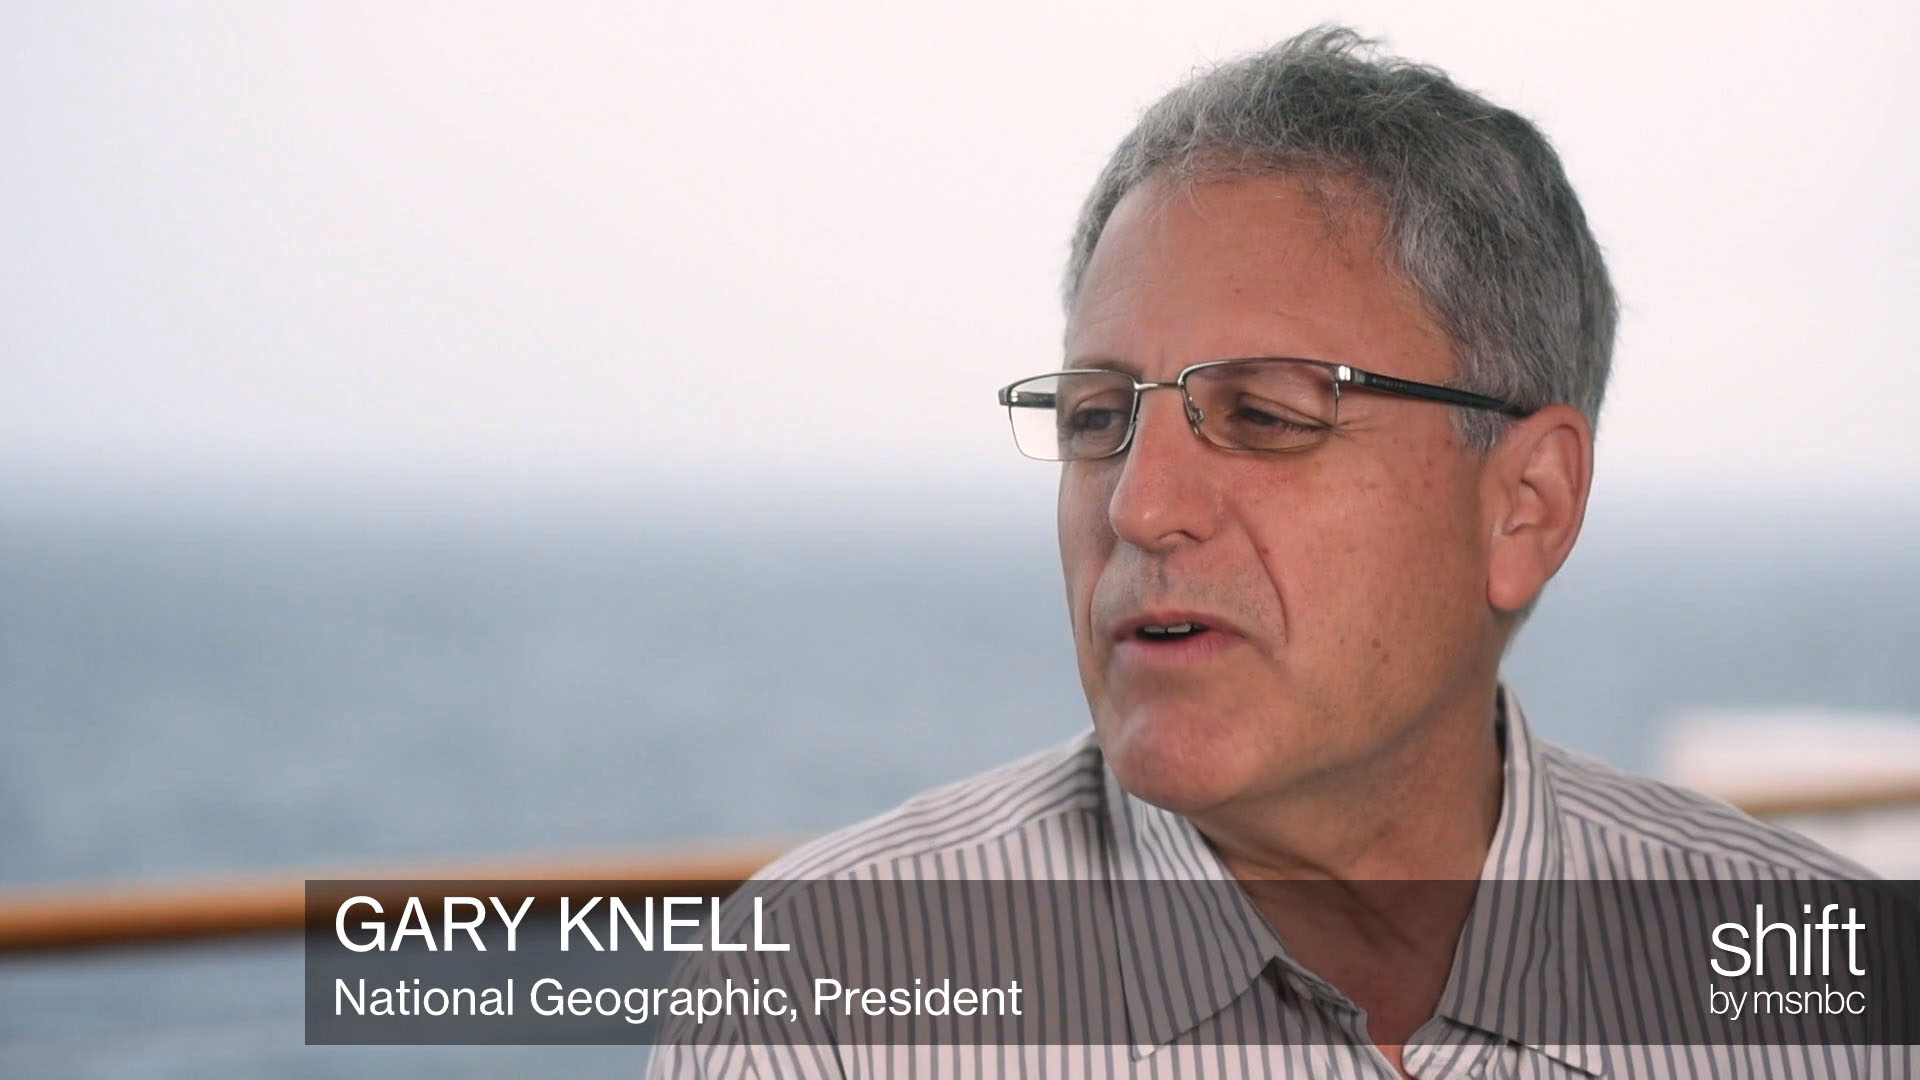 National Geographic 's Gary Knell talks...